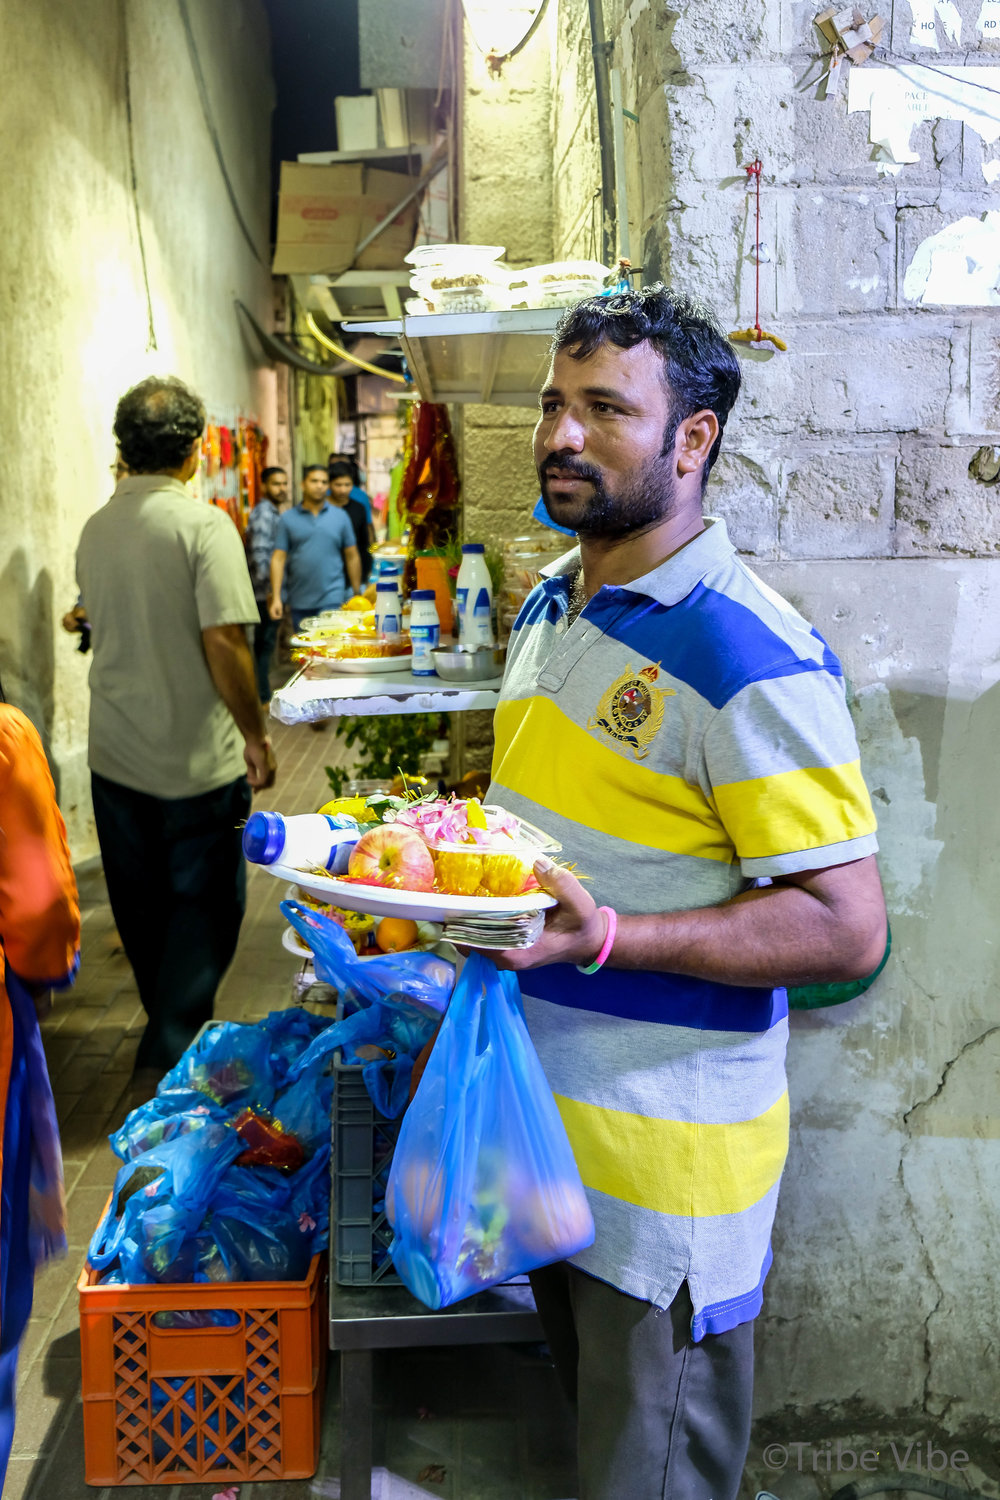 streets near the Temple in bur Dubai2.jpg